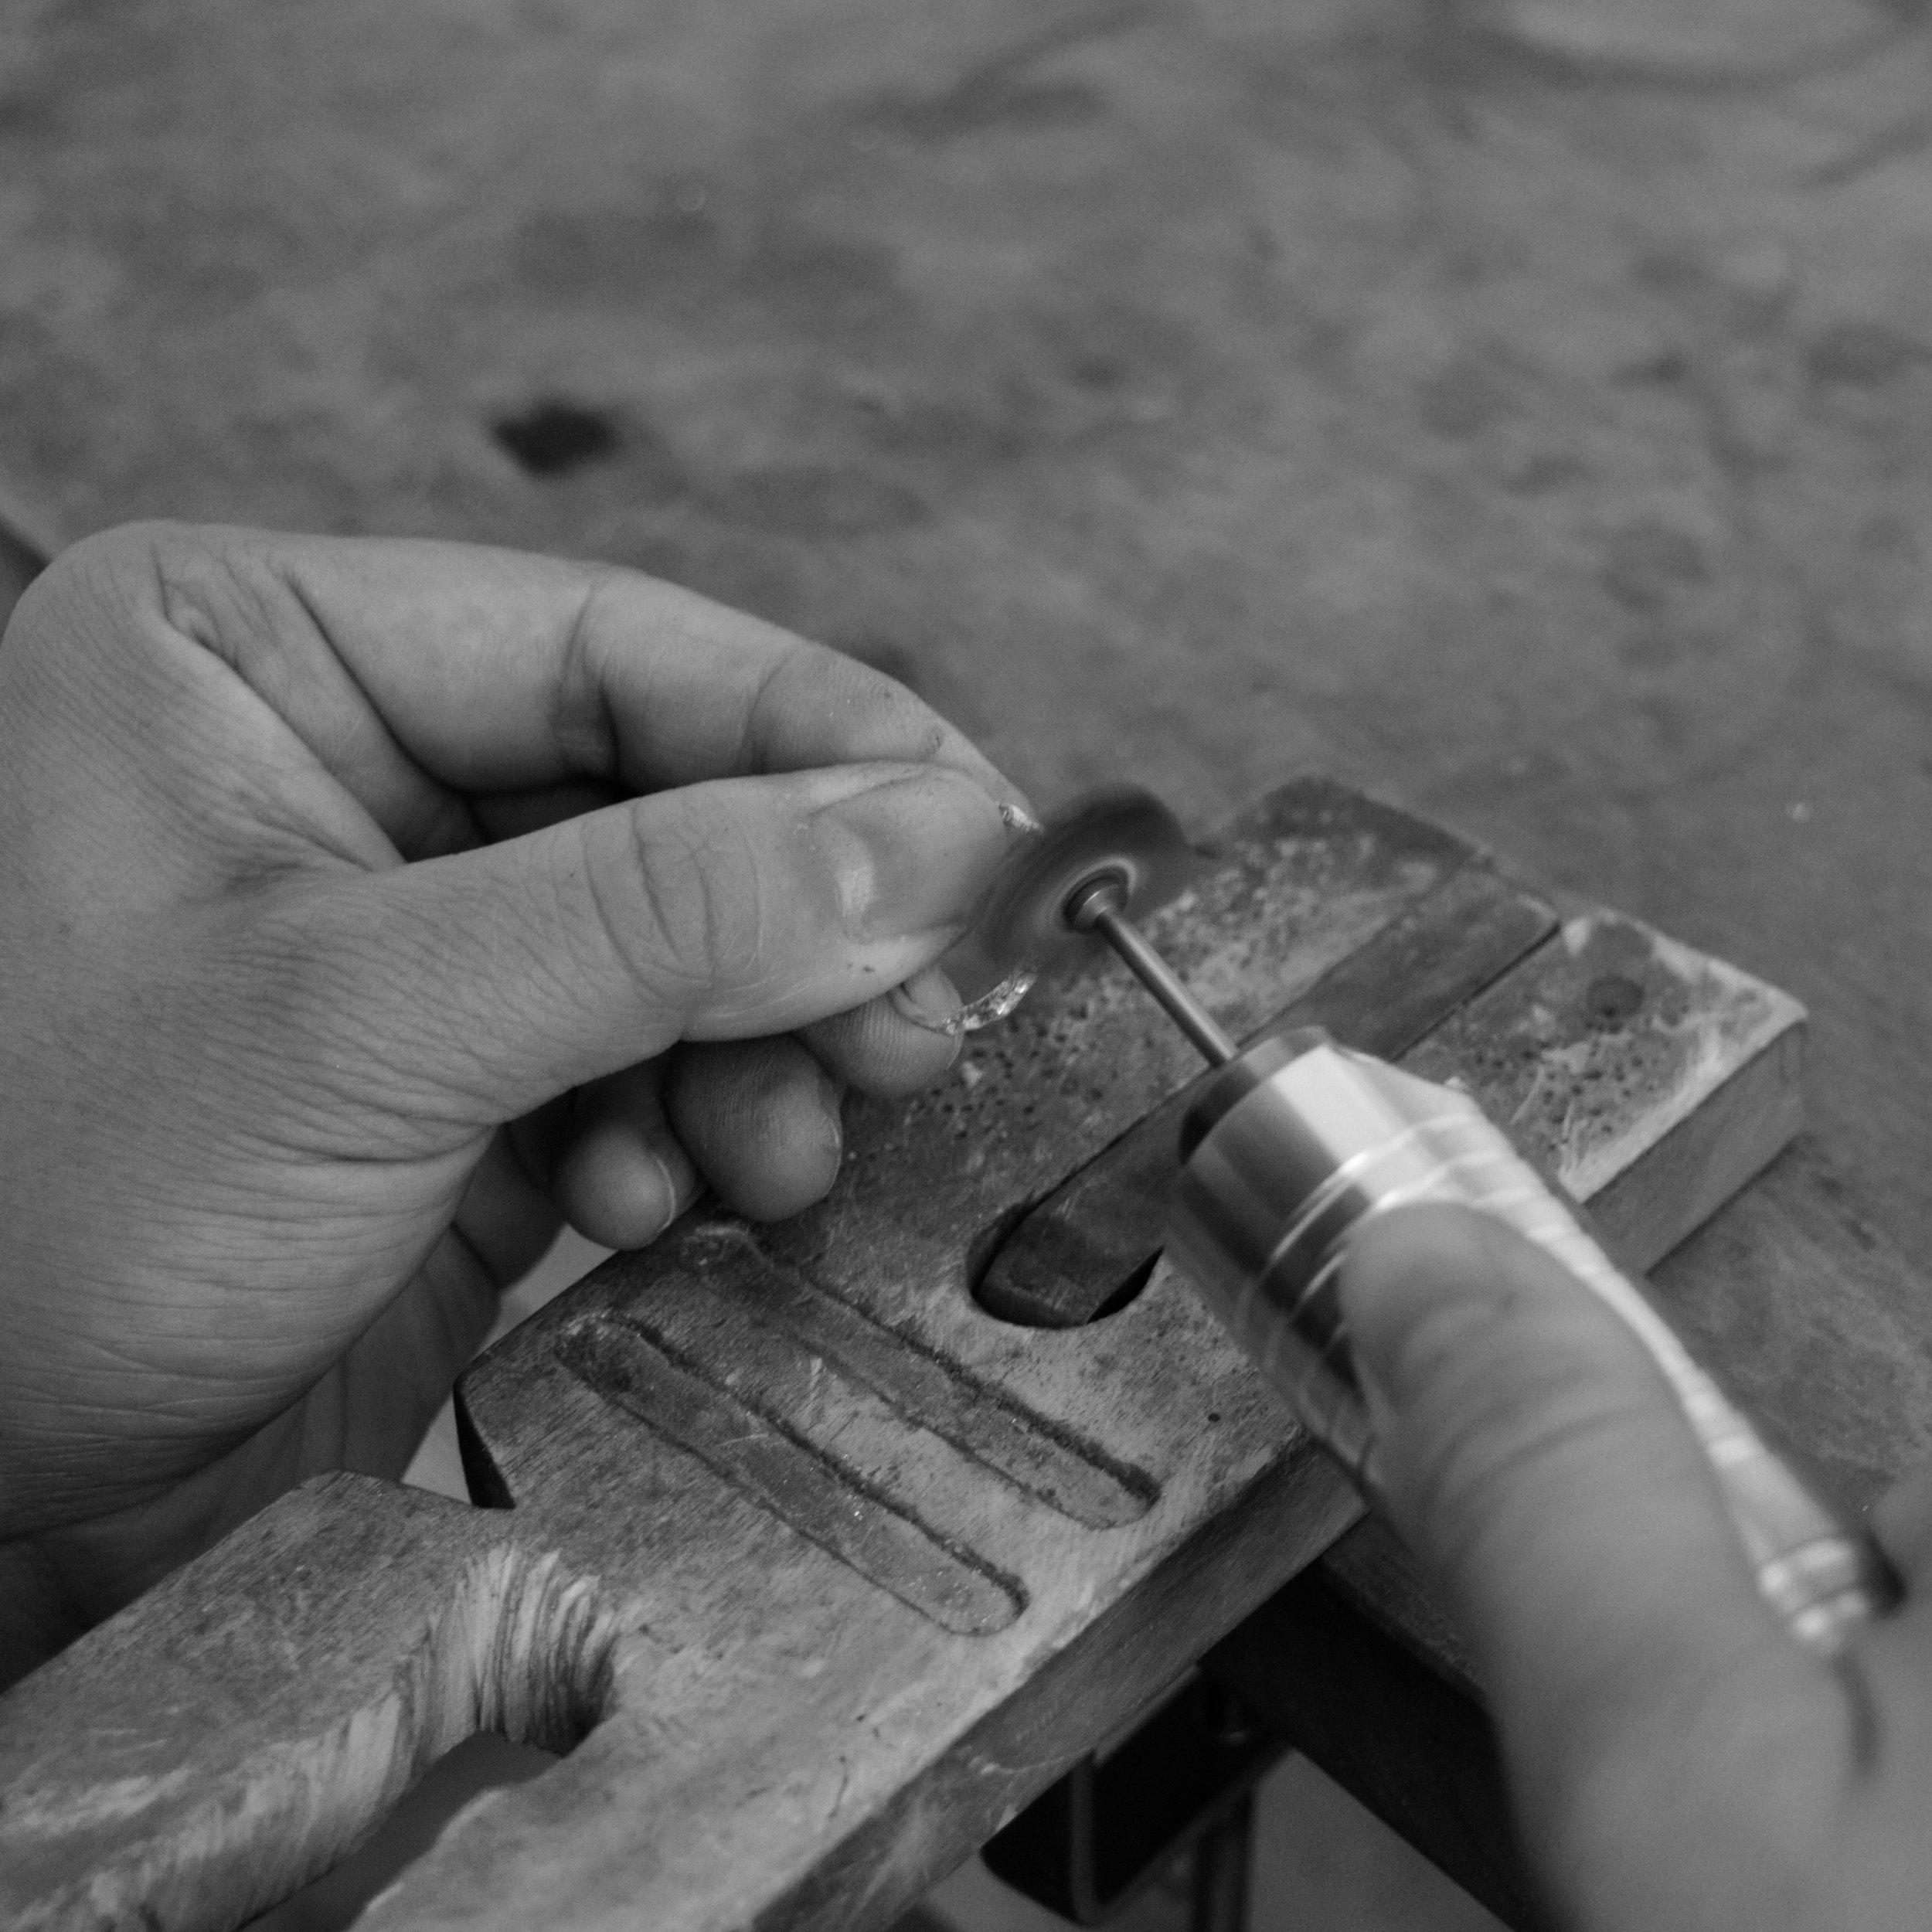 6. The outer surface of the ring is polished using different grades of bristle polishing discs, mounted on a rotary tool.